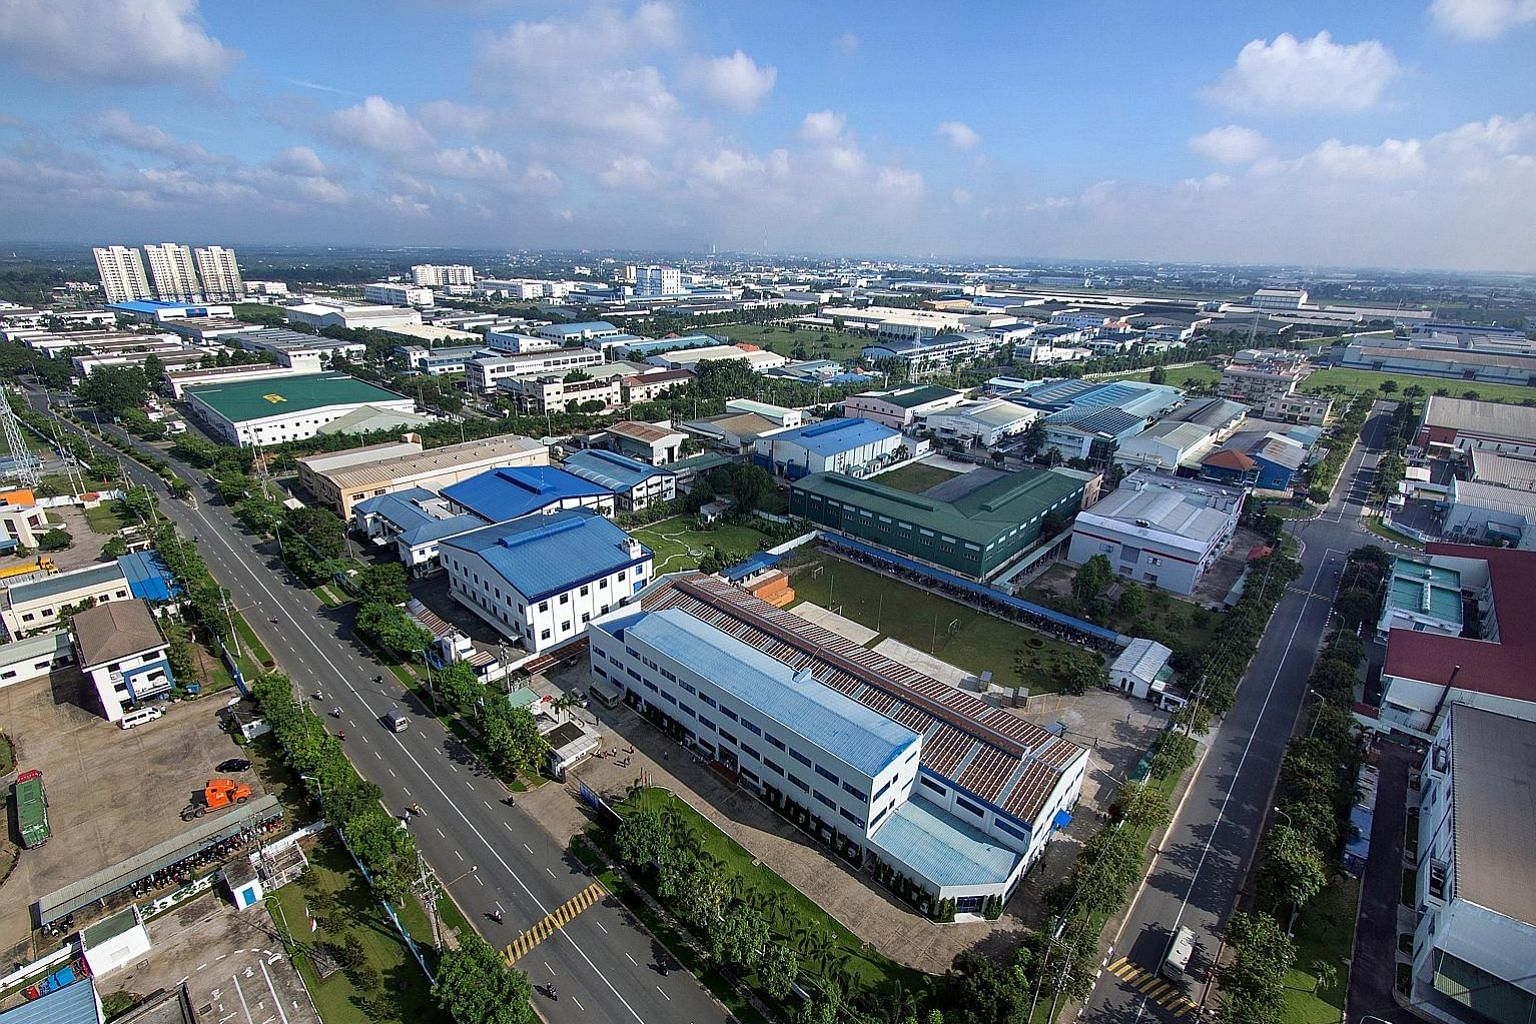 The Vietnam Singapore Industrial Park JV Co's portfolio consists of seven parks. The first is the 500ha Binh Duong I, launched in 1996. PHOTO: SEMBCORP DEVELOPMENT